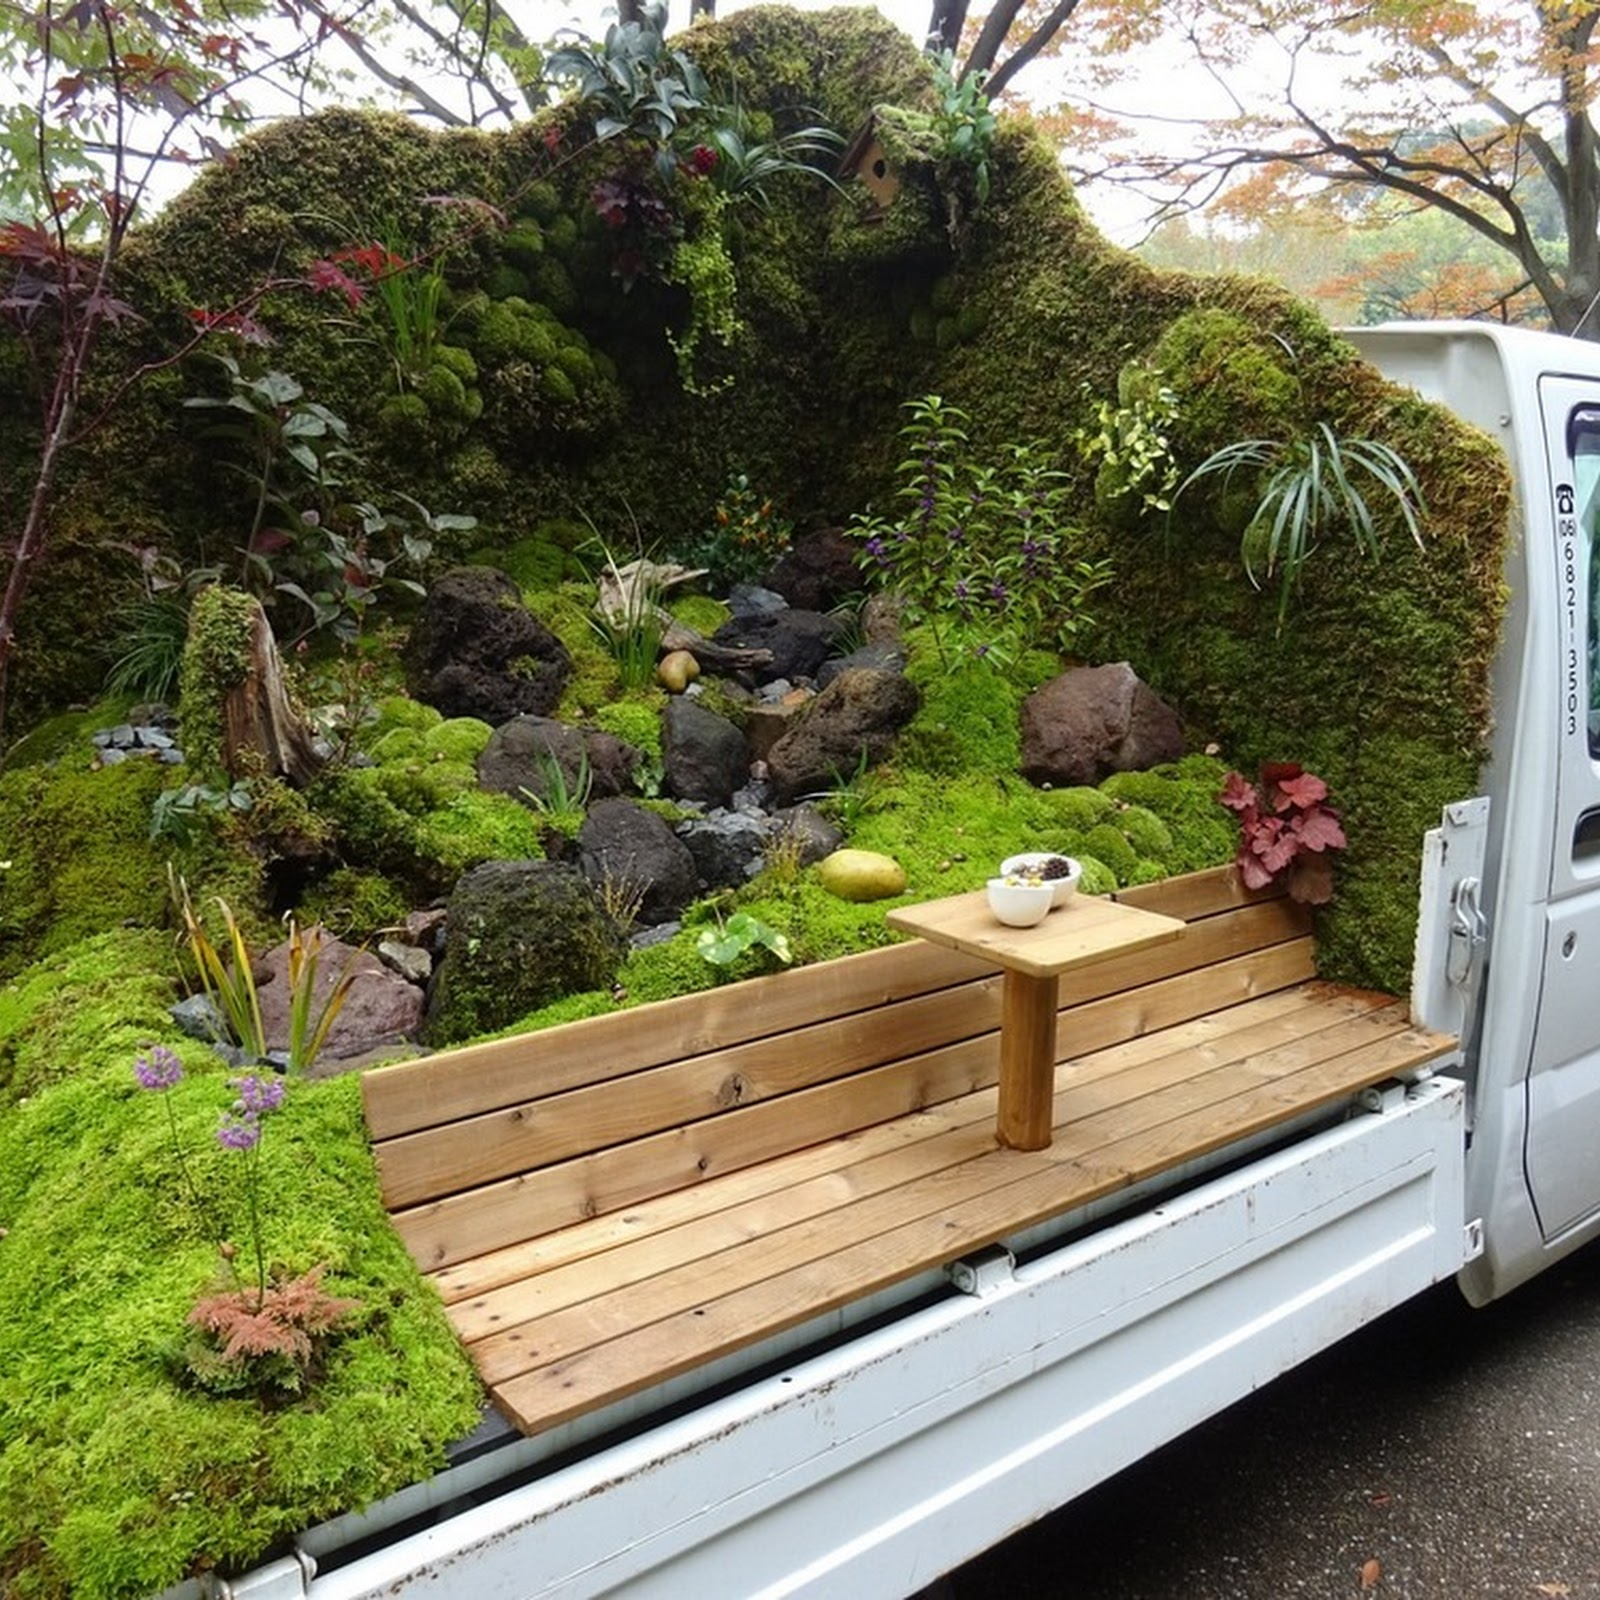 Landscaping In The Back Of Japanese Mini Pickup Trucks